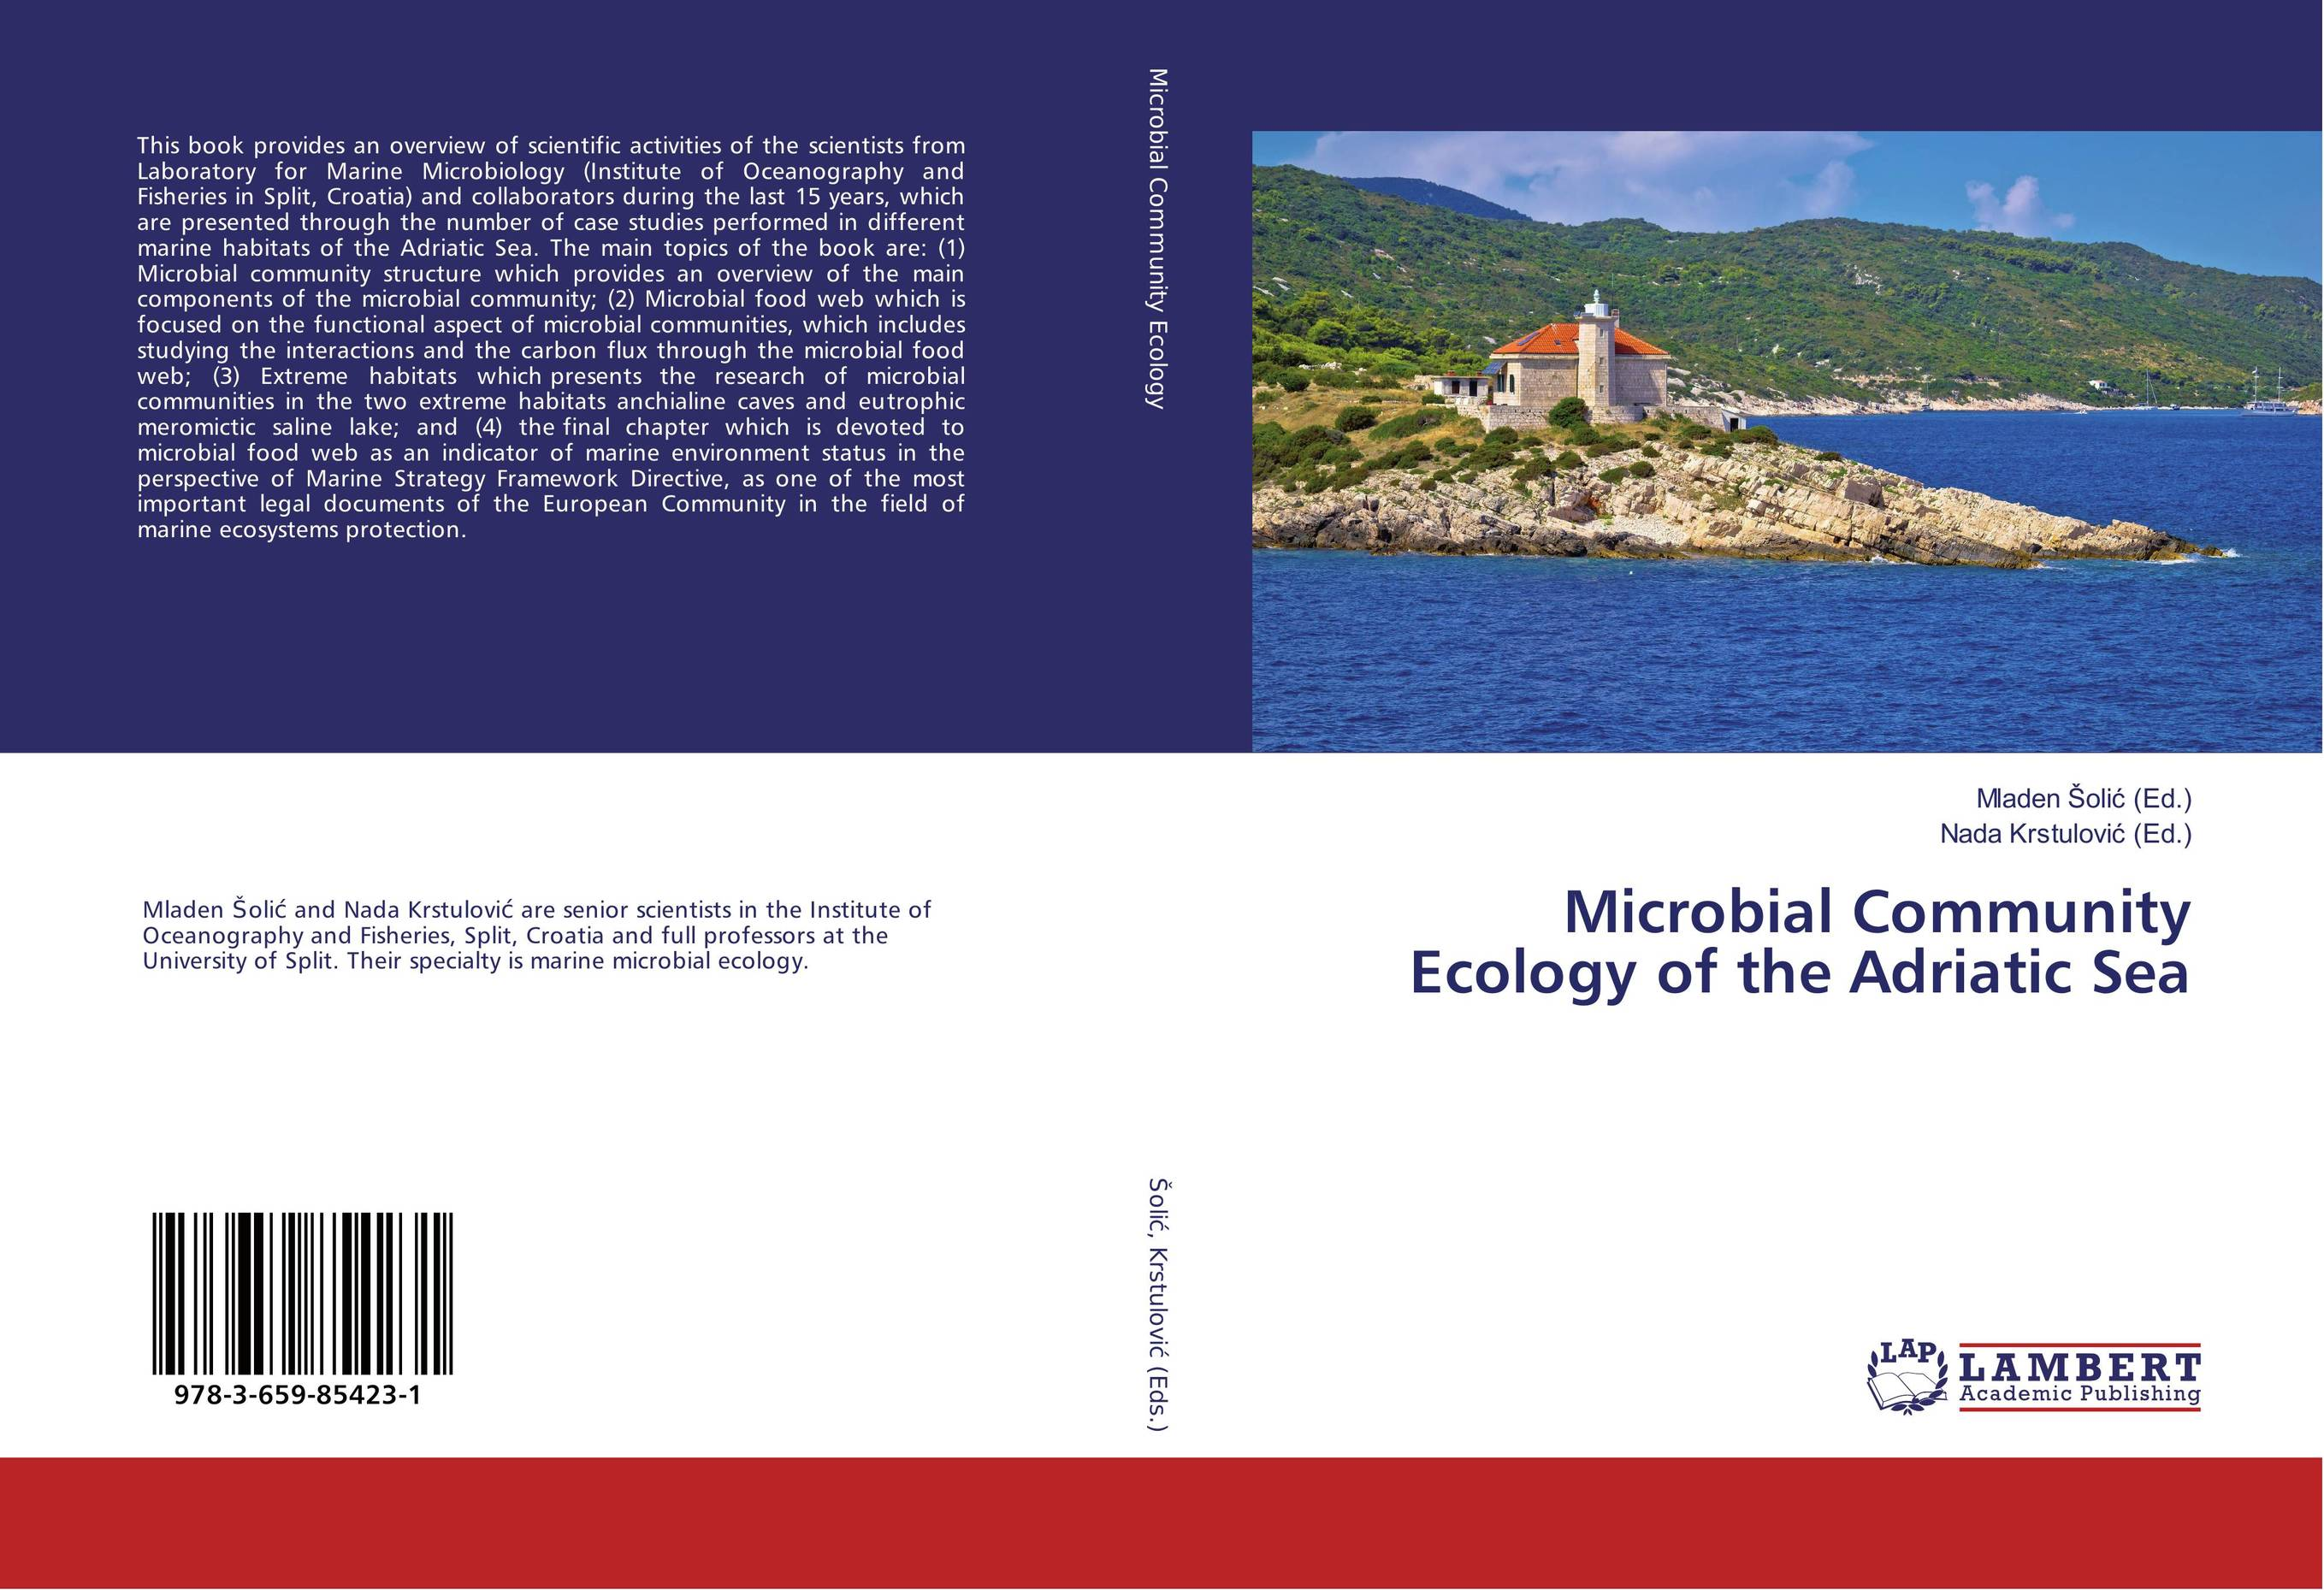 Microbial Community Ecology of the Adriatic Sea community ecology